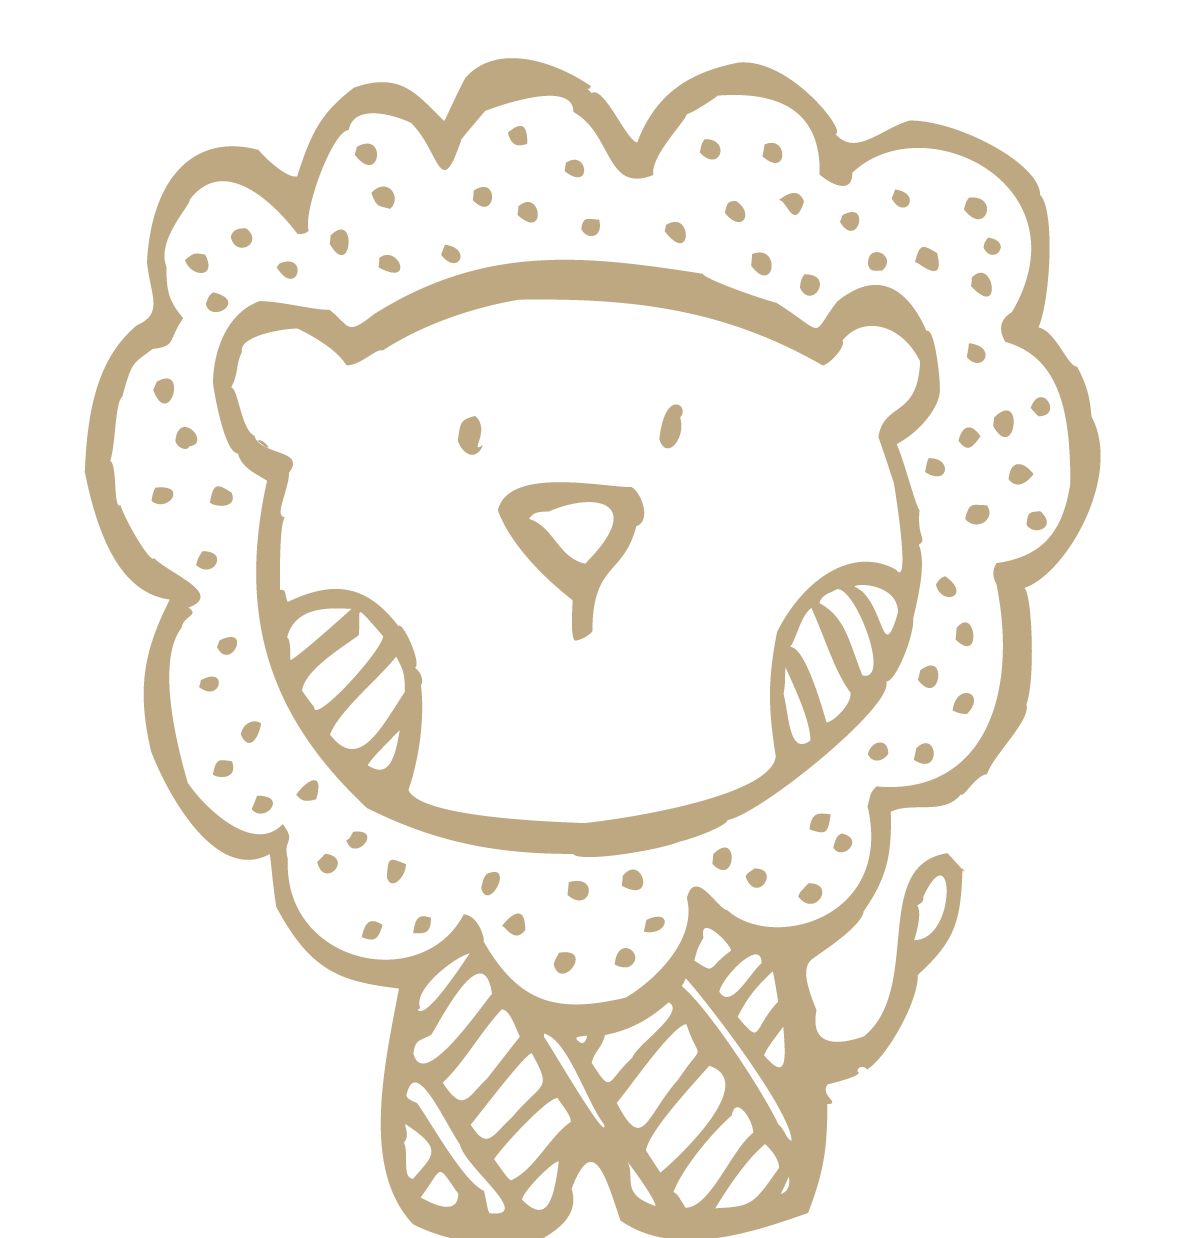 Lion little transprent png. Flour drawing cute image free library